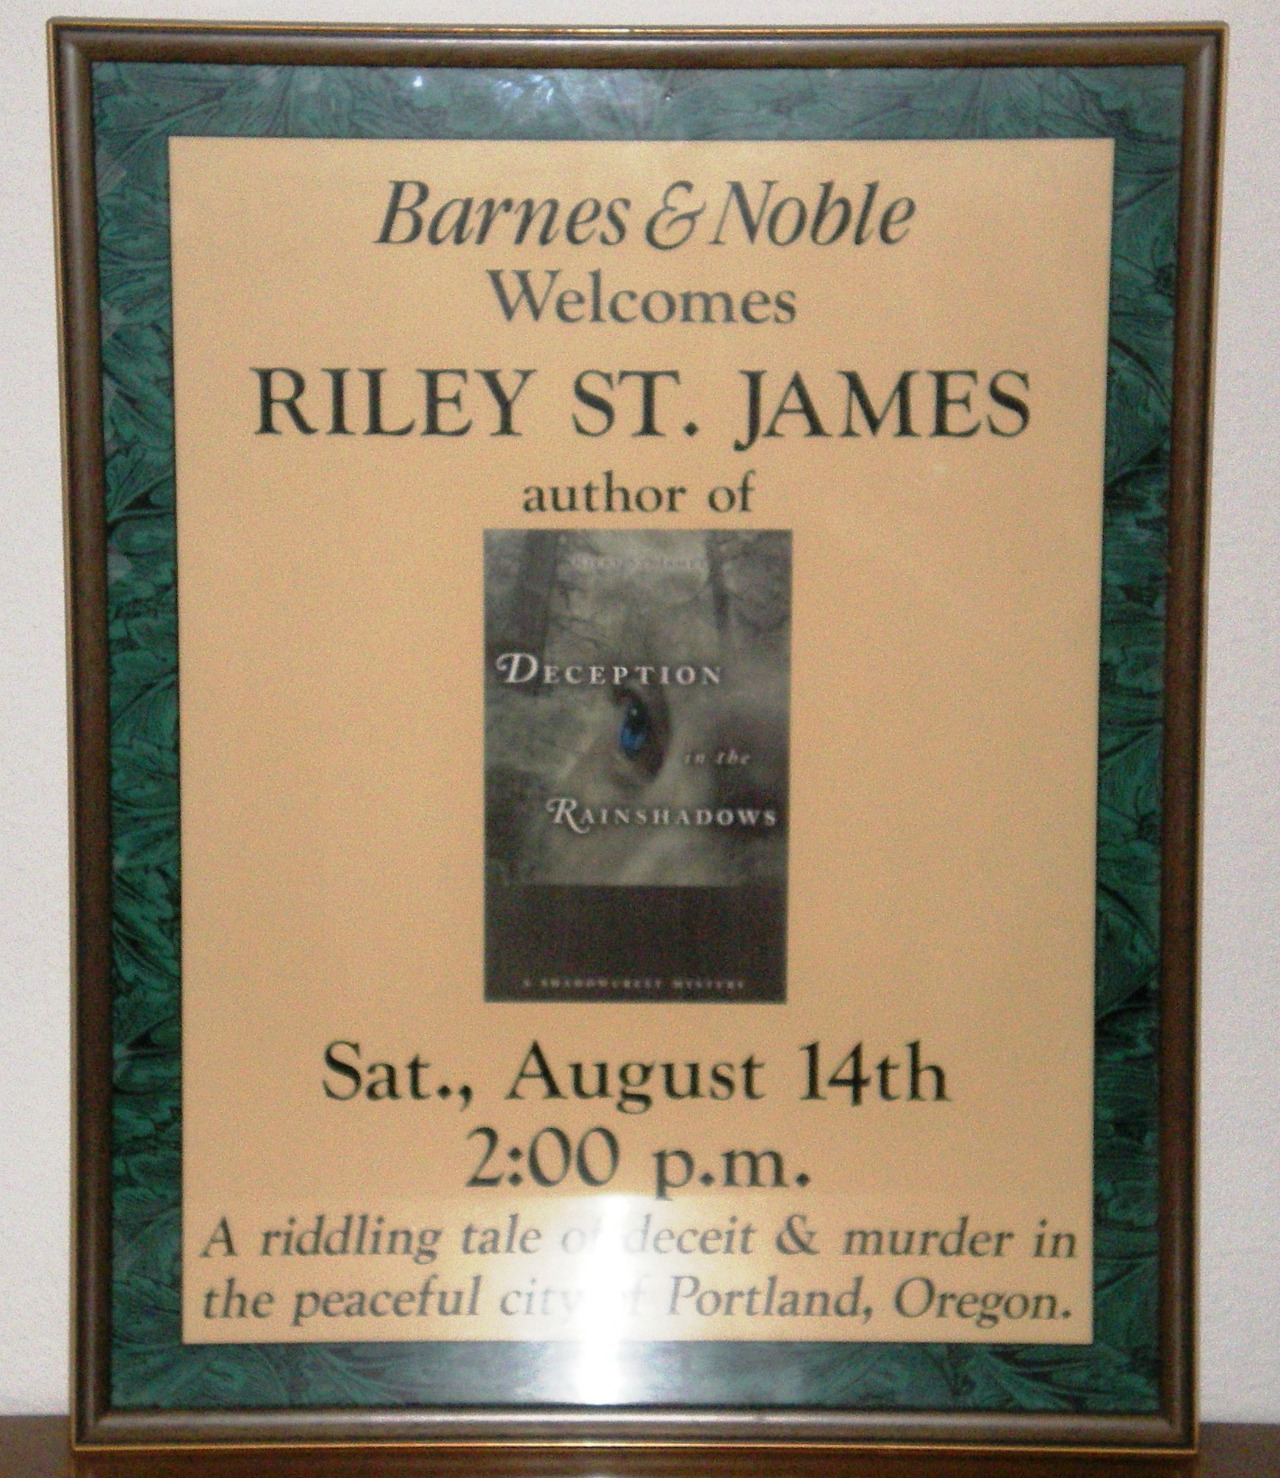 Riley St. James at Barnes & Noble